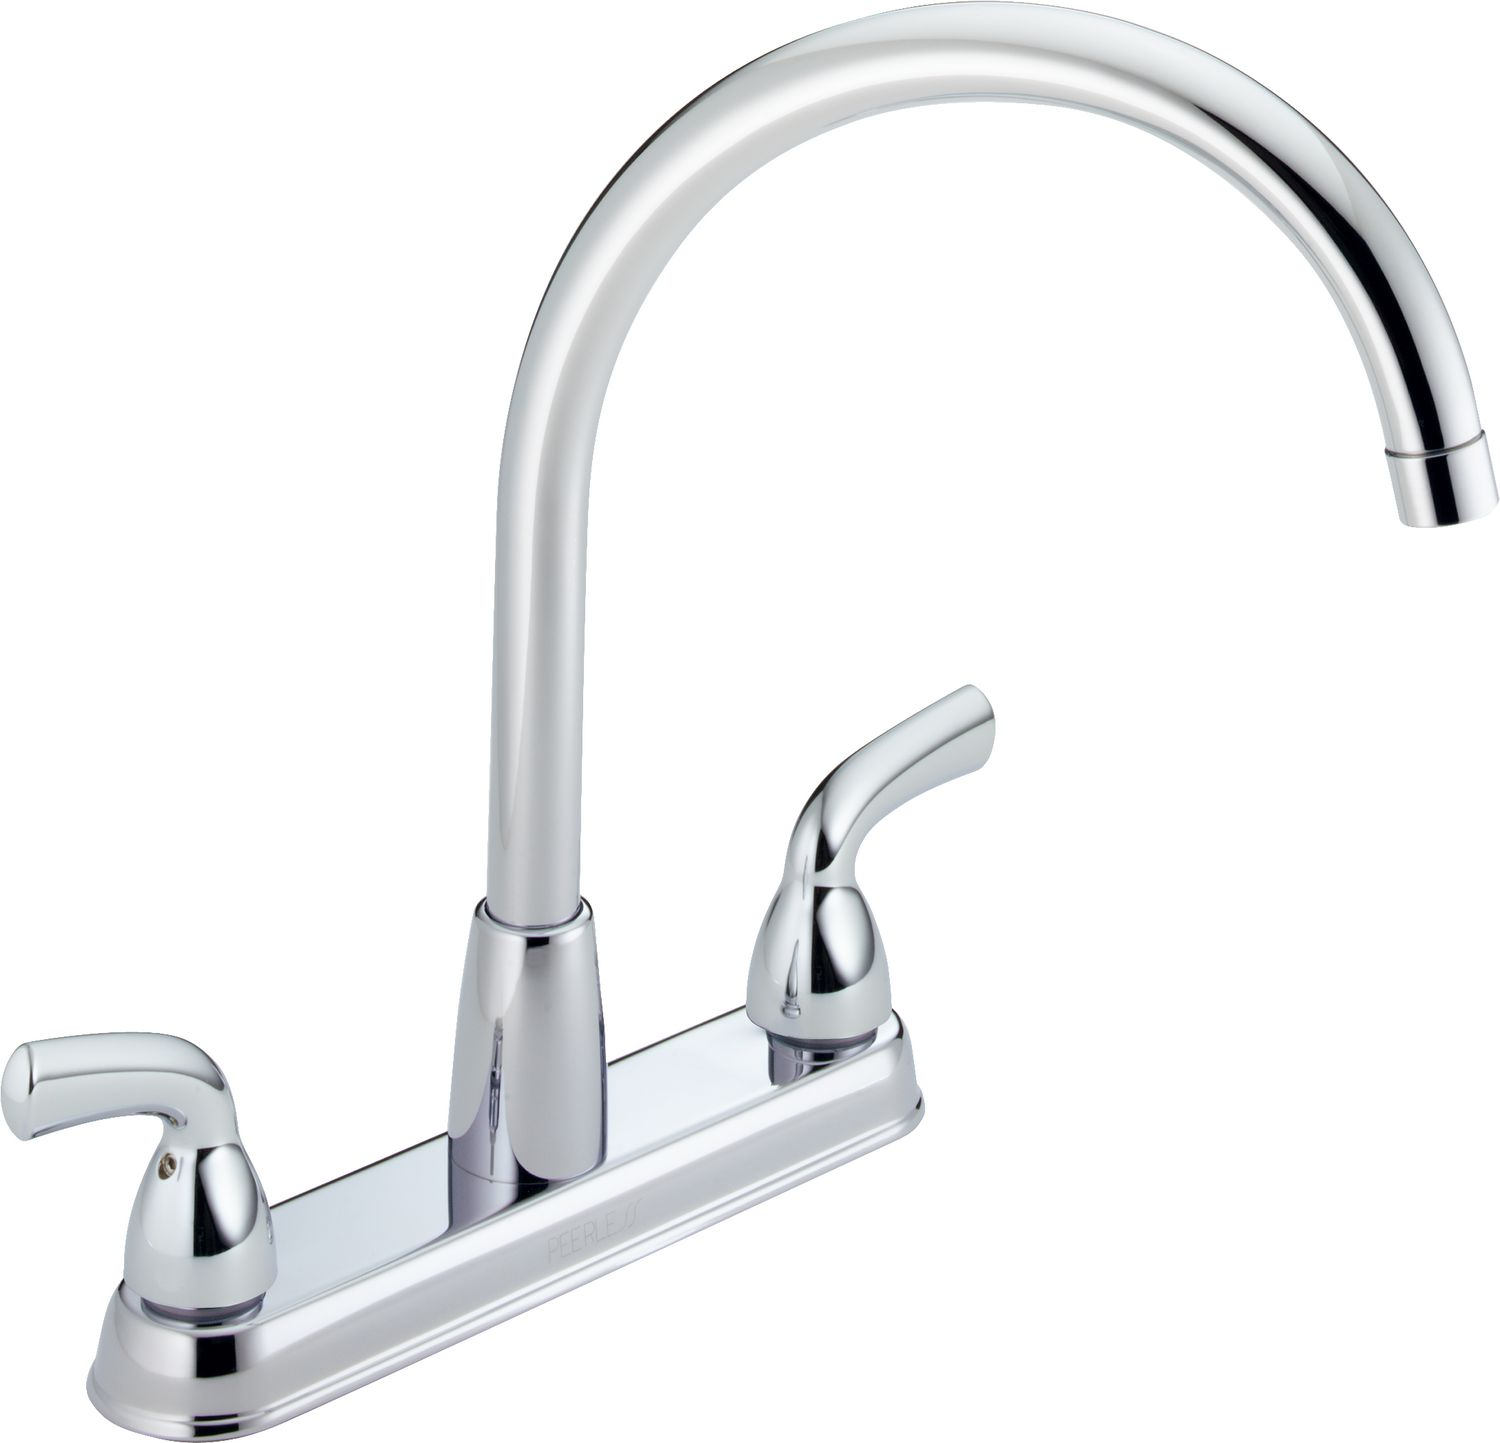 kitchen handle faucets faucet deck delta high shop waterfall mount arc pd white